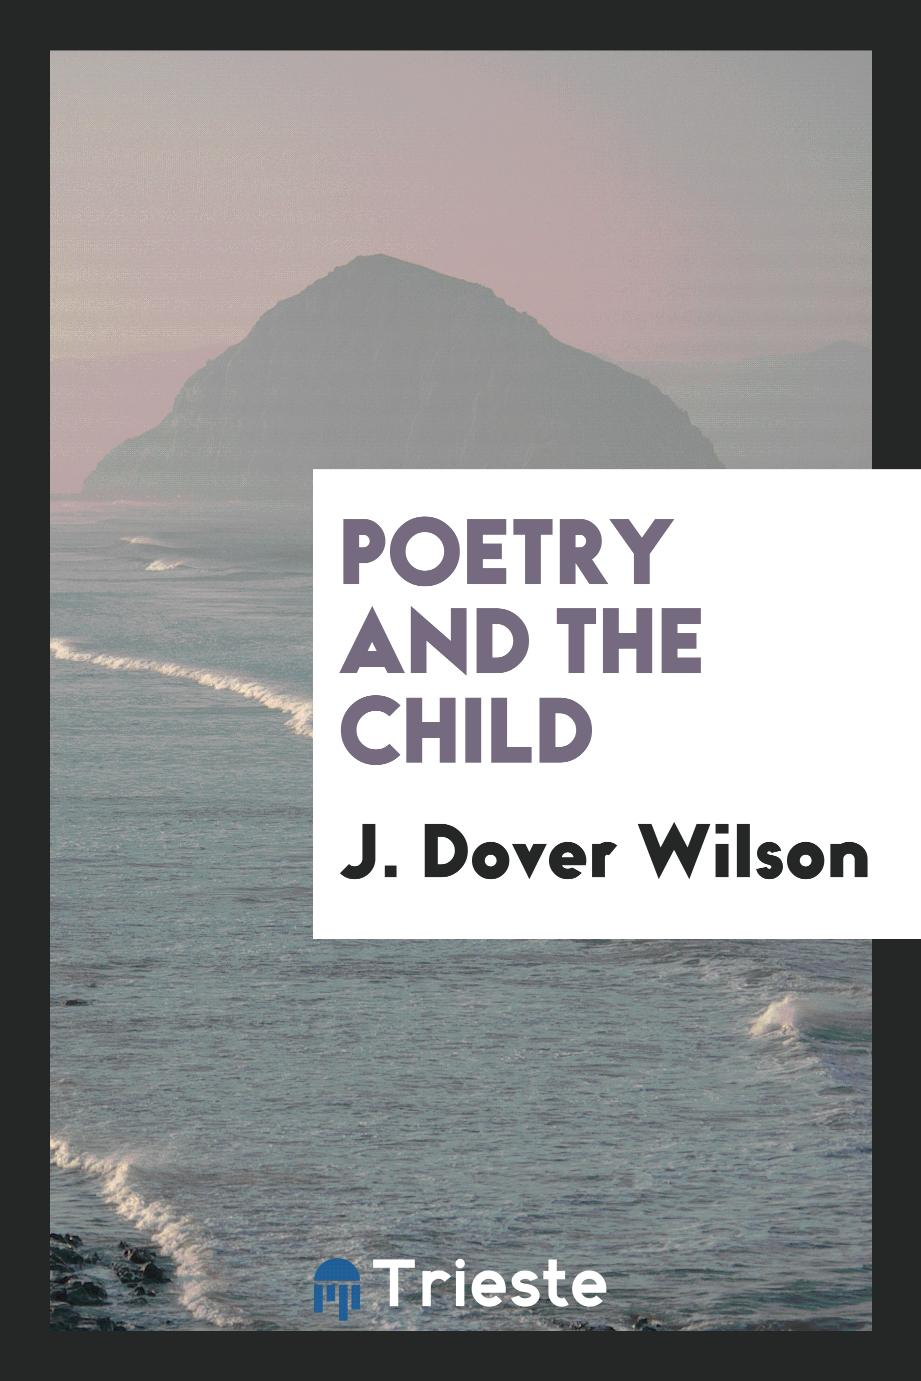 Poetry and the child